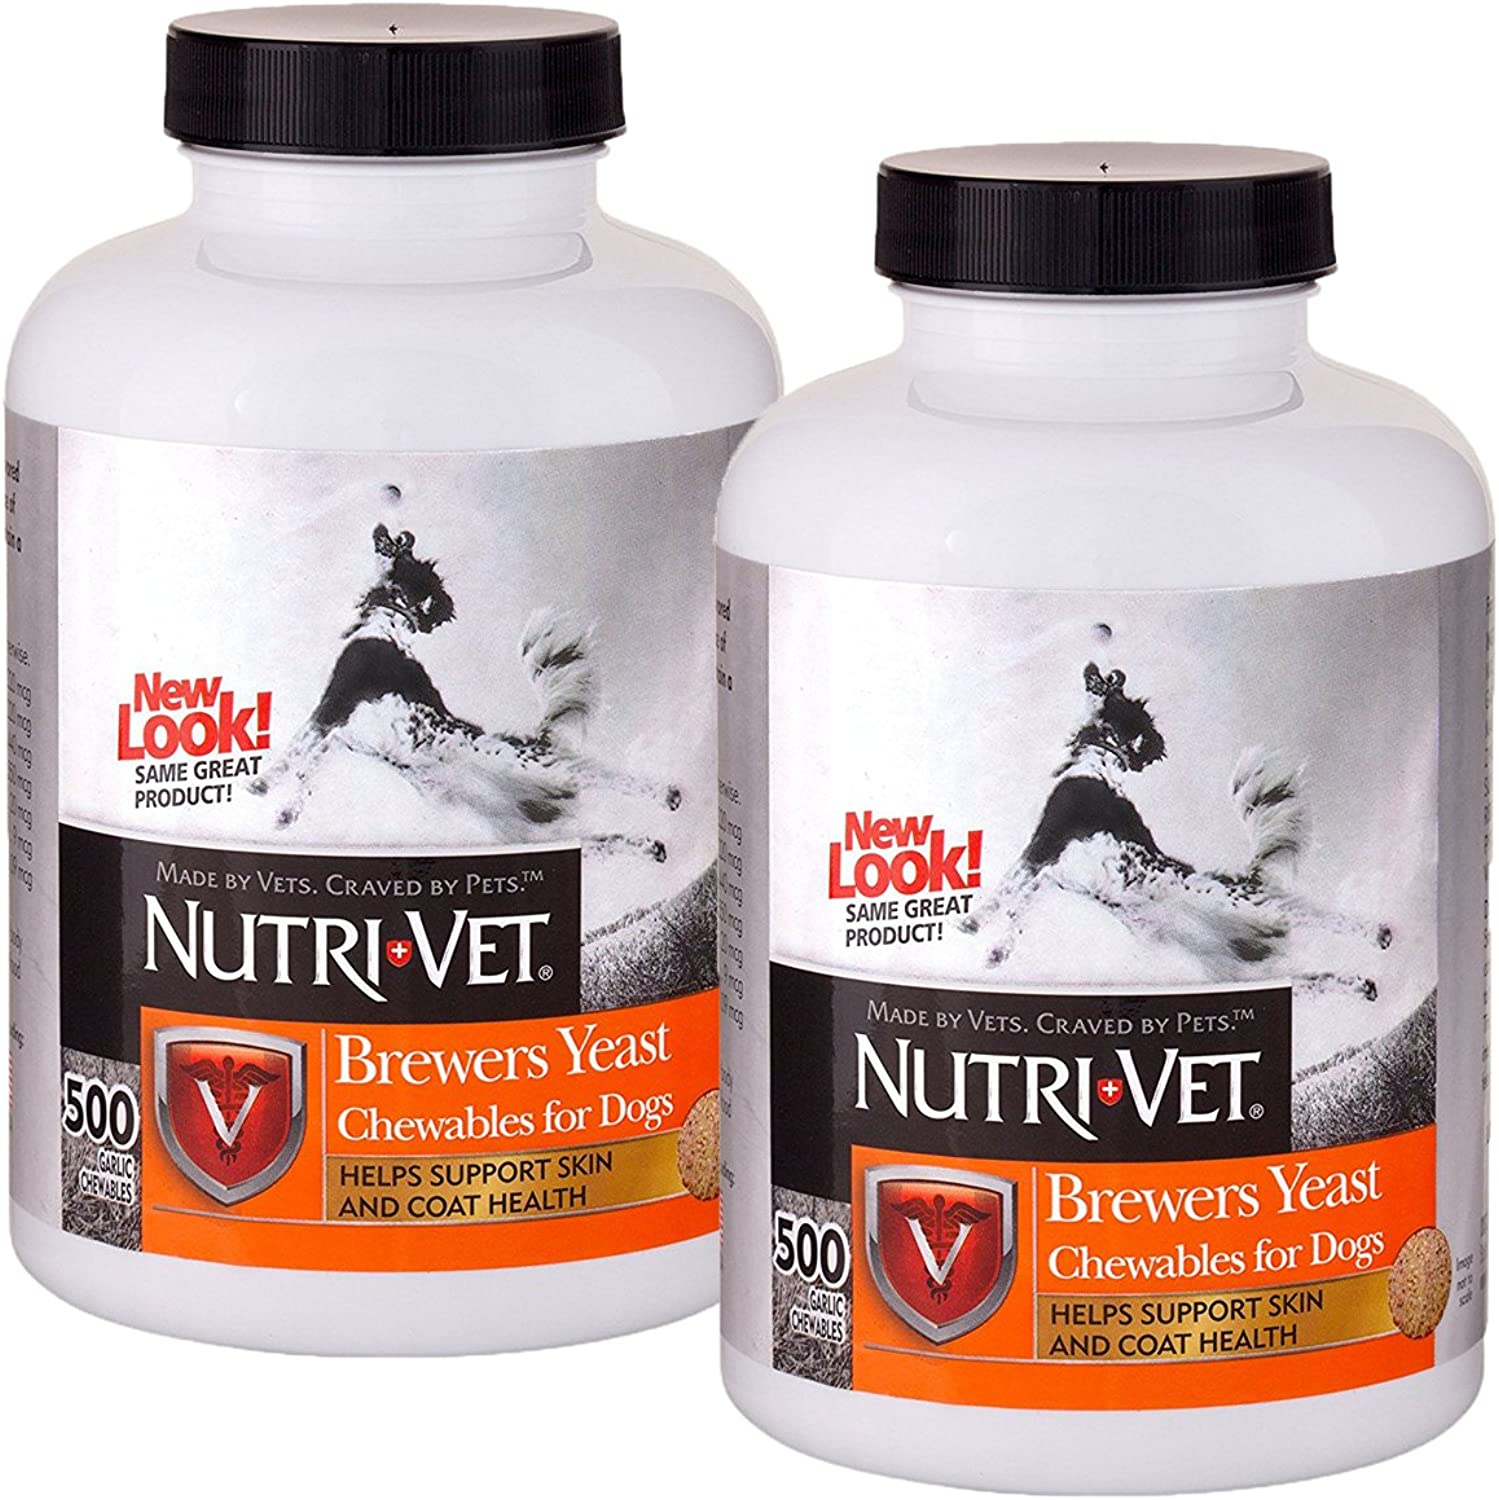 NutriVet Brewers Yeast with Garlic Chewables, 1000 Count ntmqqq2750